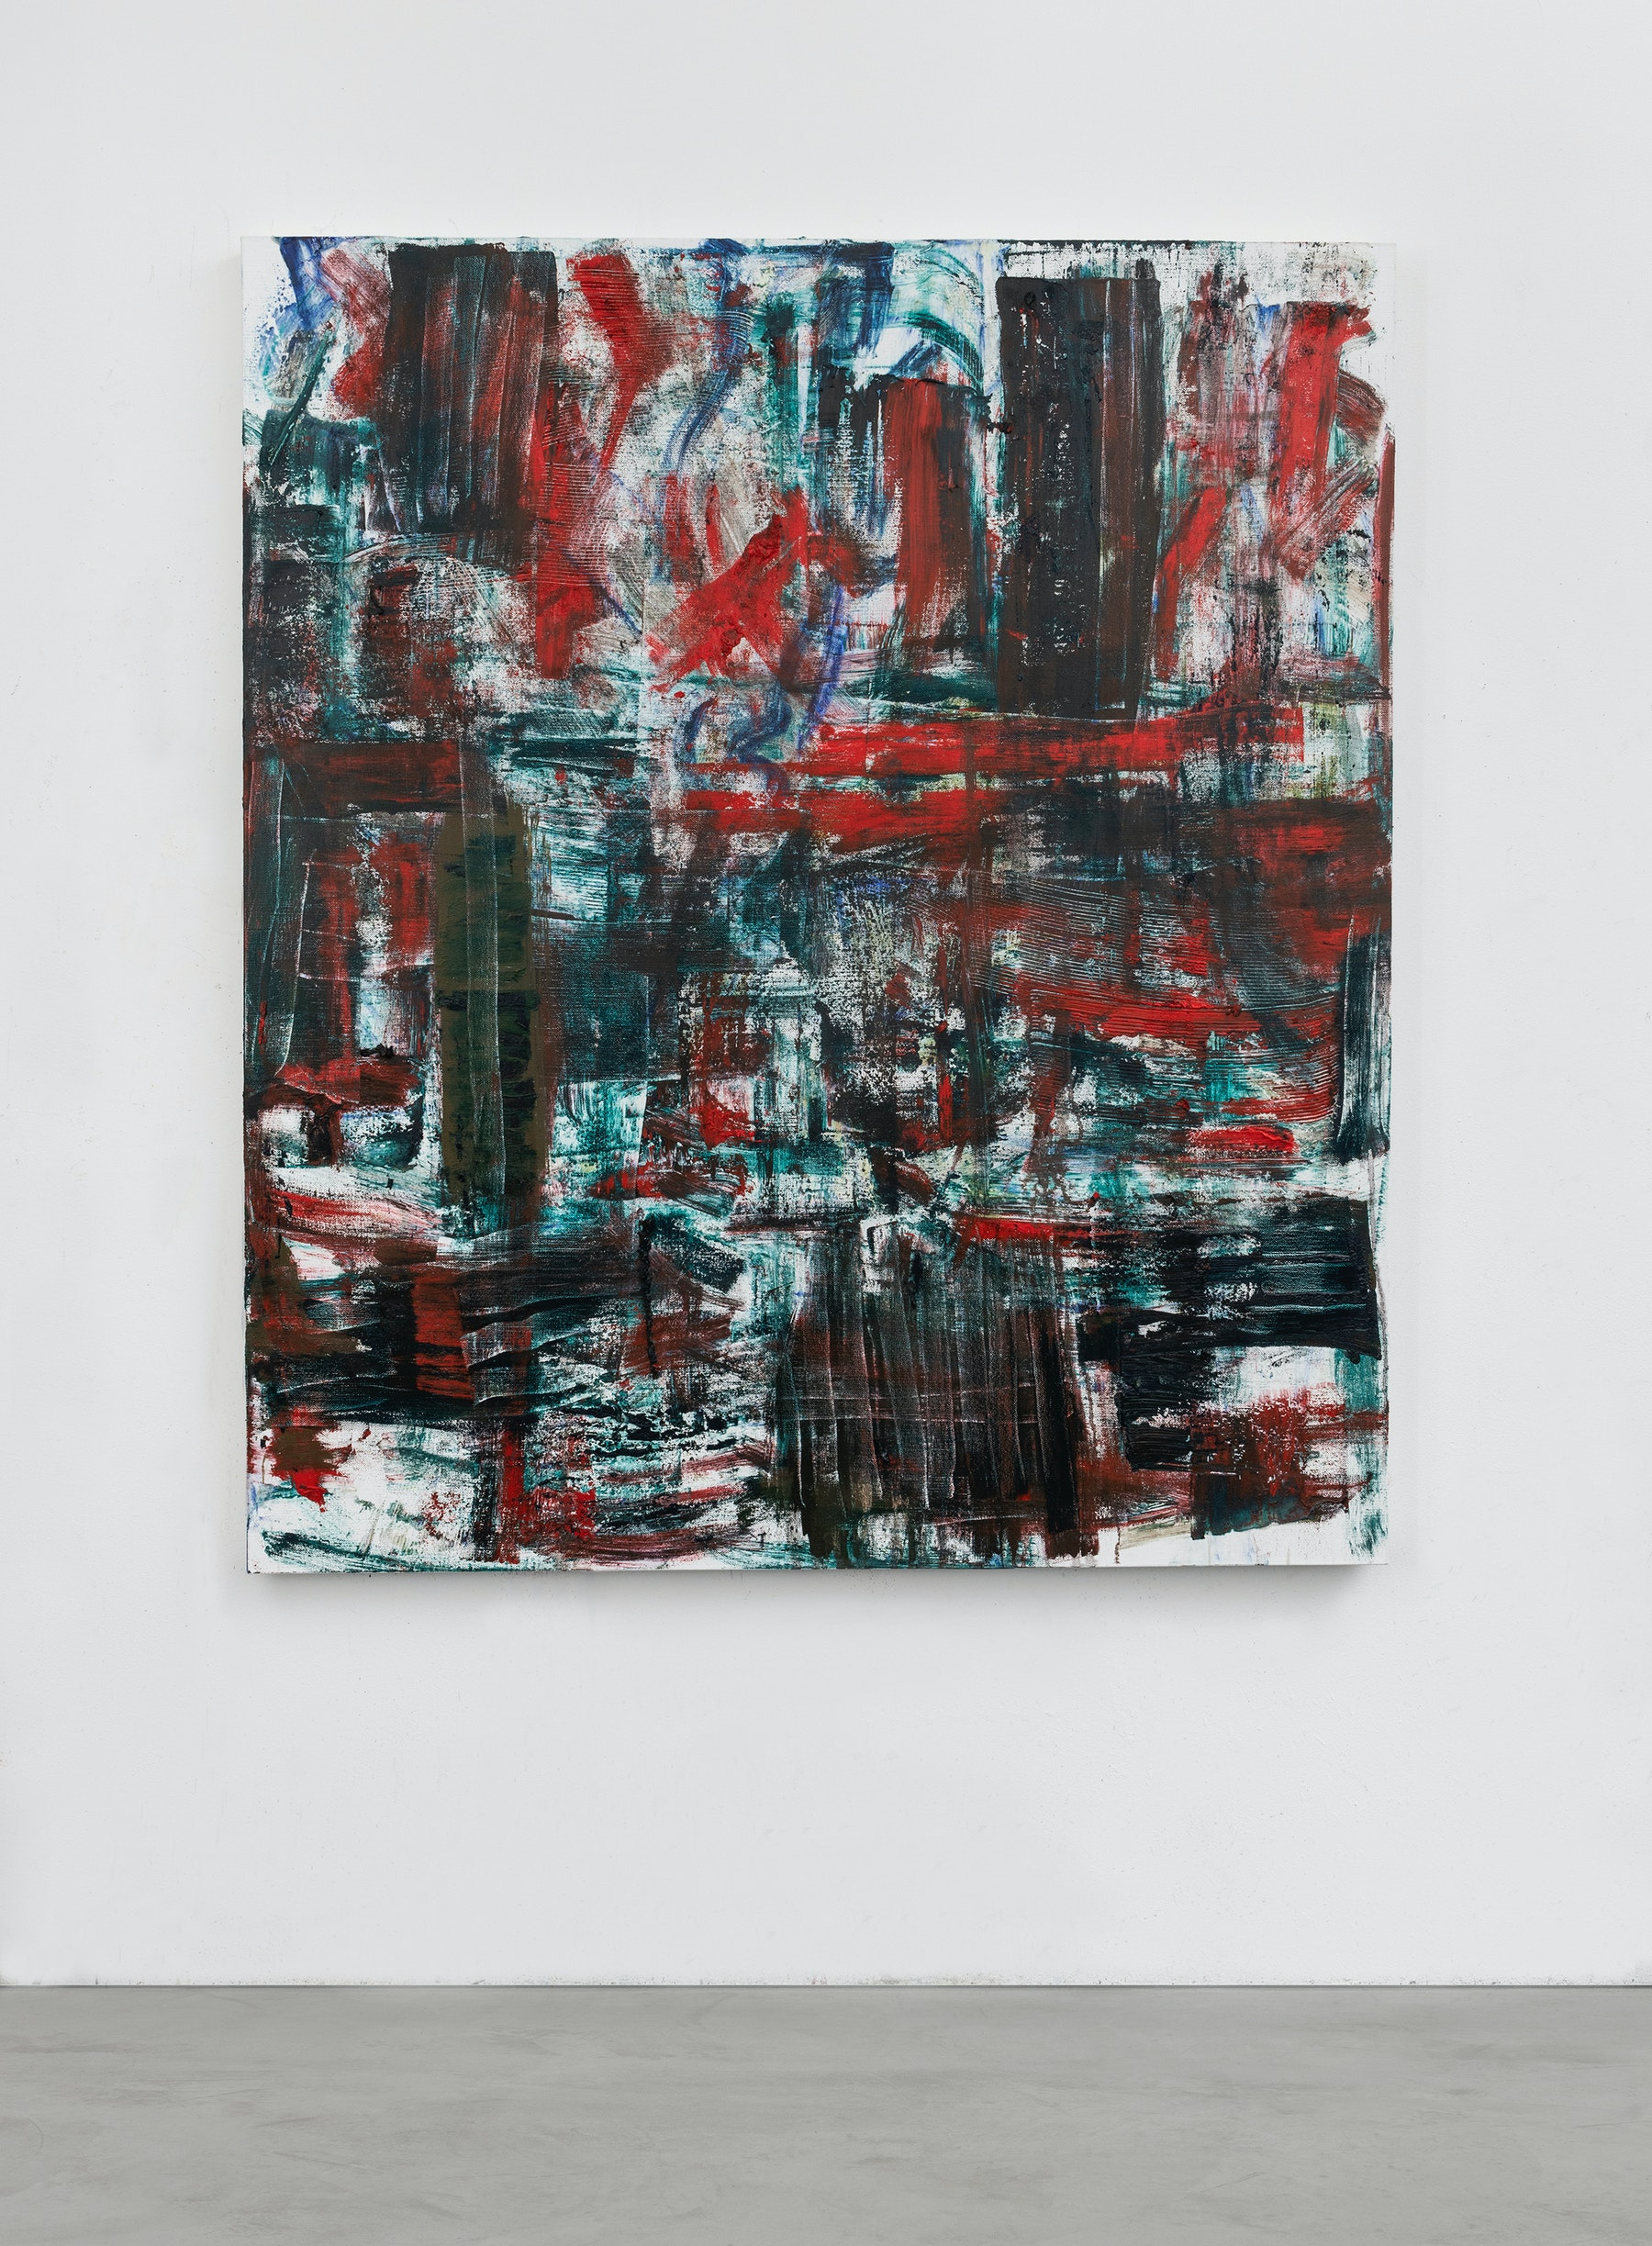 """Louise Fishman """"RADICAL HOPE,"""" 2020 Oil on linen 66 x 57"""" [HxW] (167.64 x 144.78 cm) Inventory #FIS159 Courtesy of the artist and Vielmetter Los Angeles Photocredit Adam Reich, NY"""